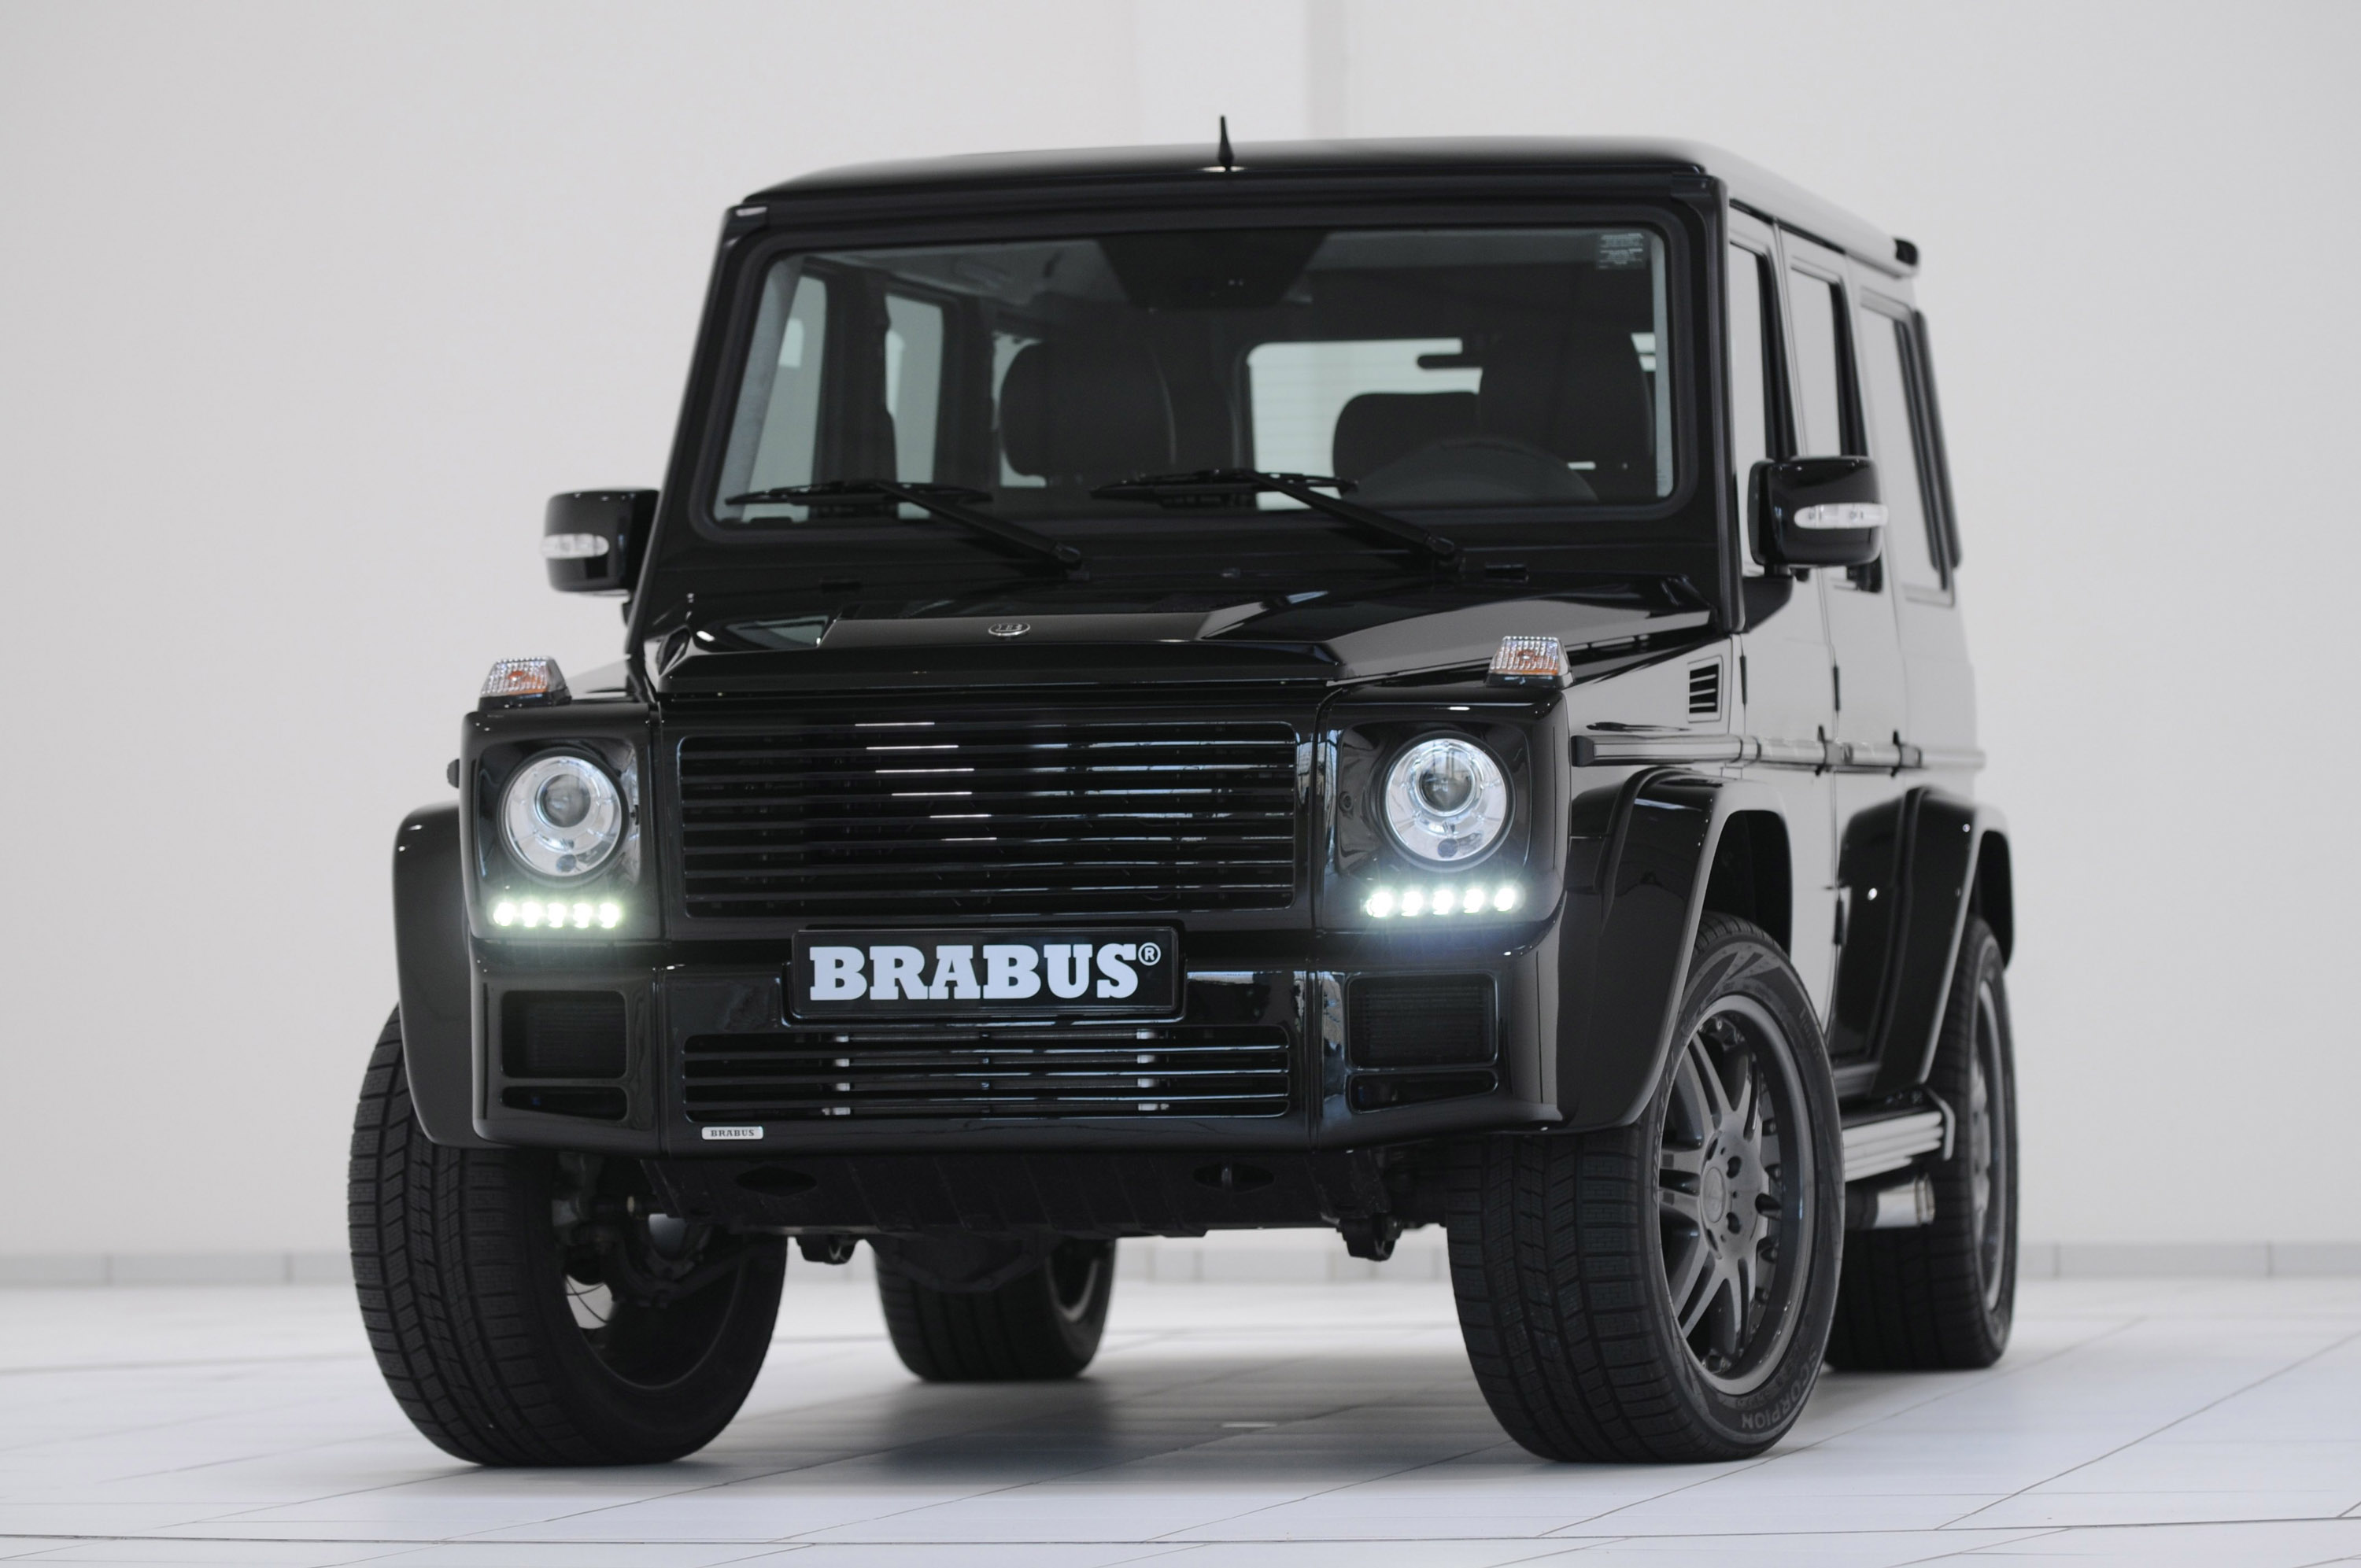 brabus g v12 s biturbo. Black Bedroom Furniture Sets. Home Design Ideas